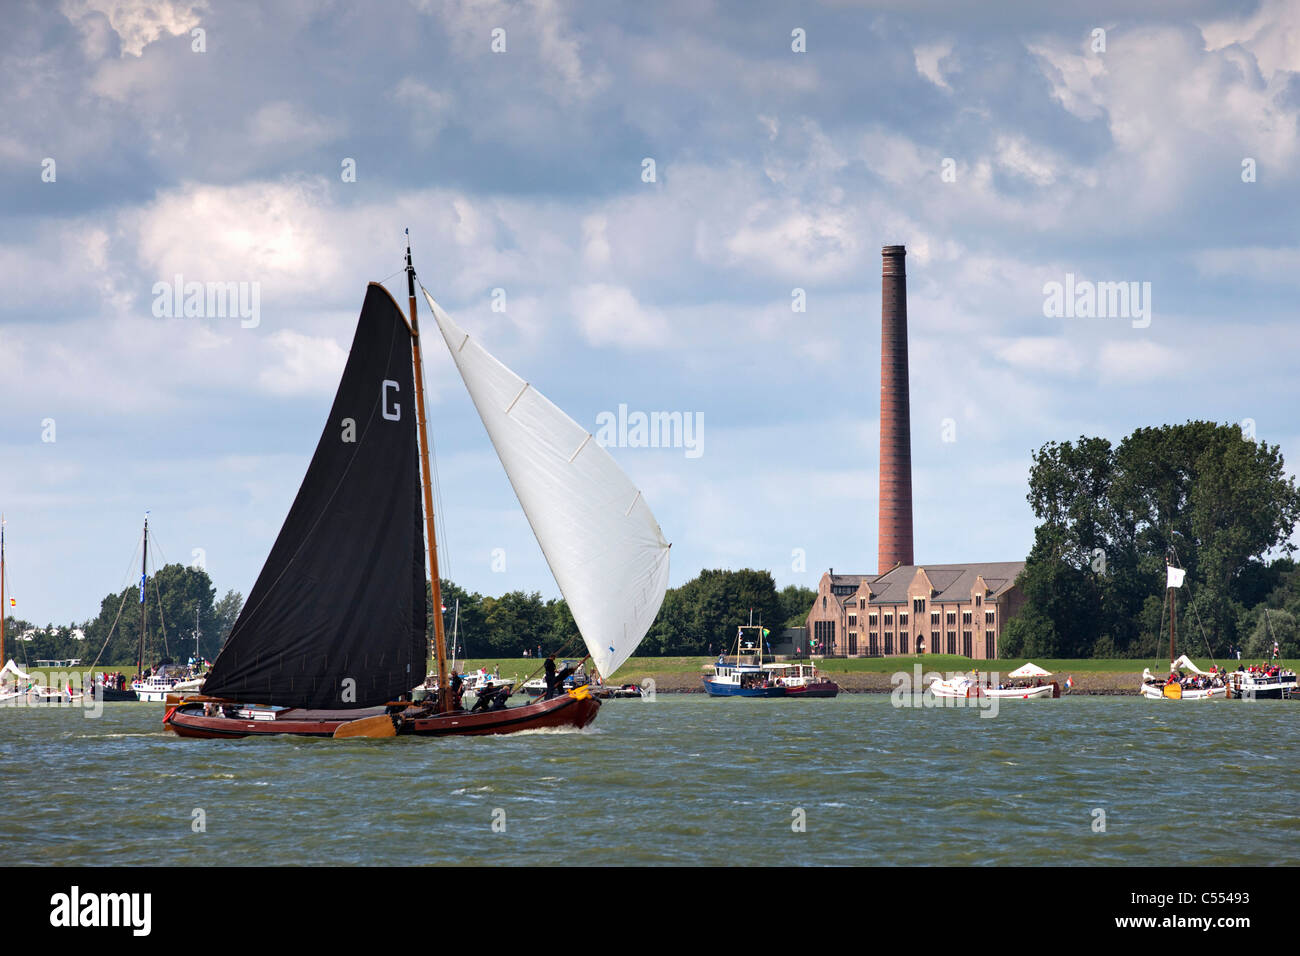 Lemmer, Sailing races called Skutsjesilen. Water pumping station called Woudagemaal, Unesco World Heritage site. - Stock Image